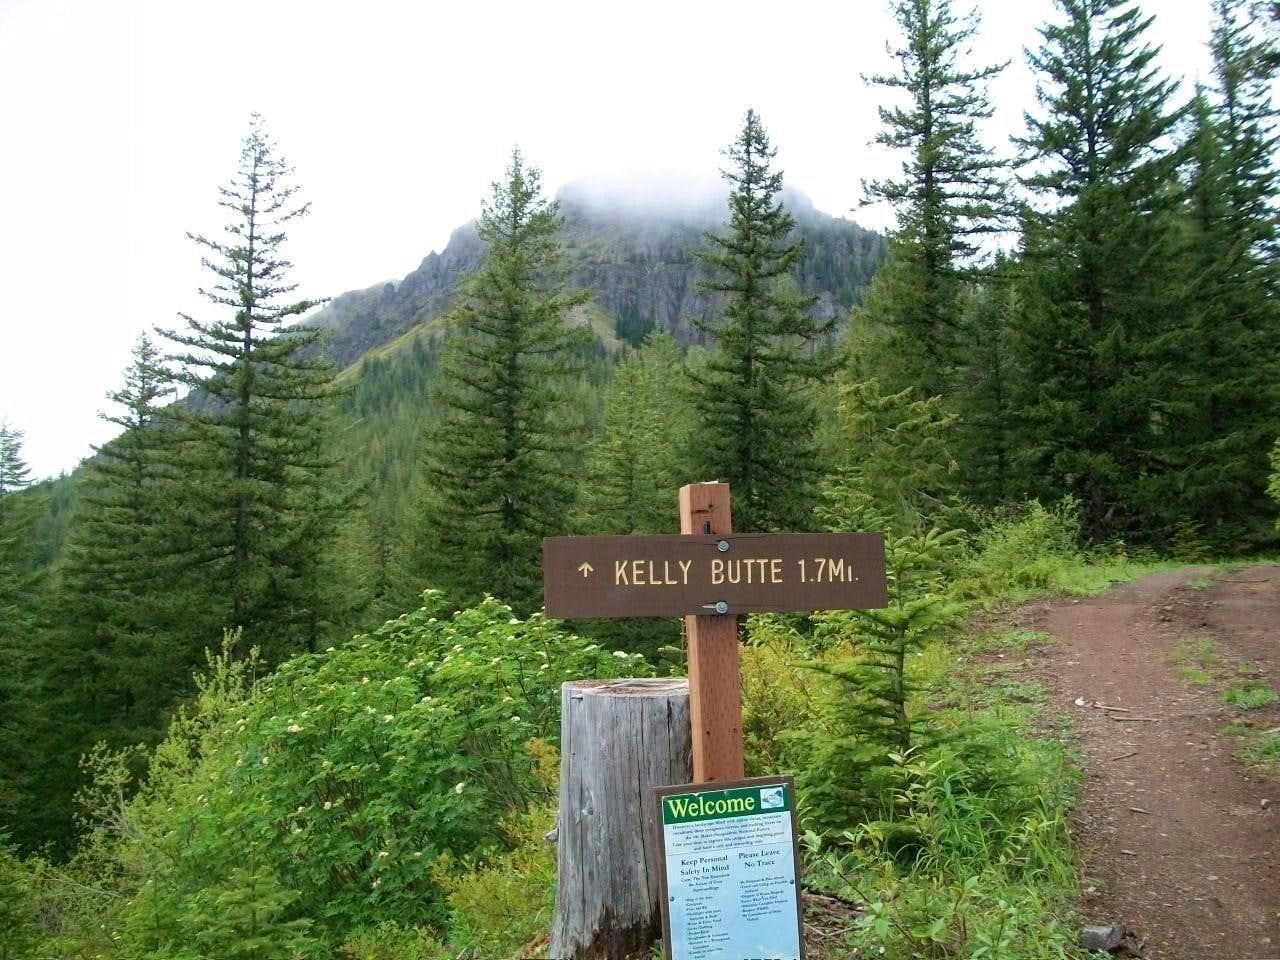 Kelly Butte